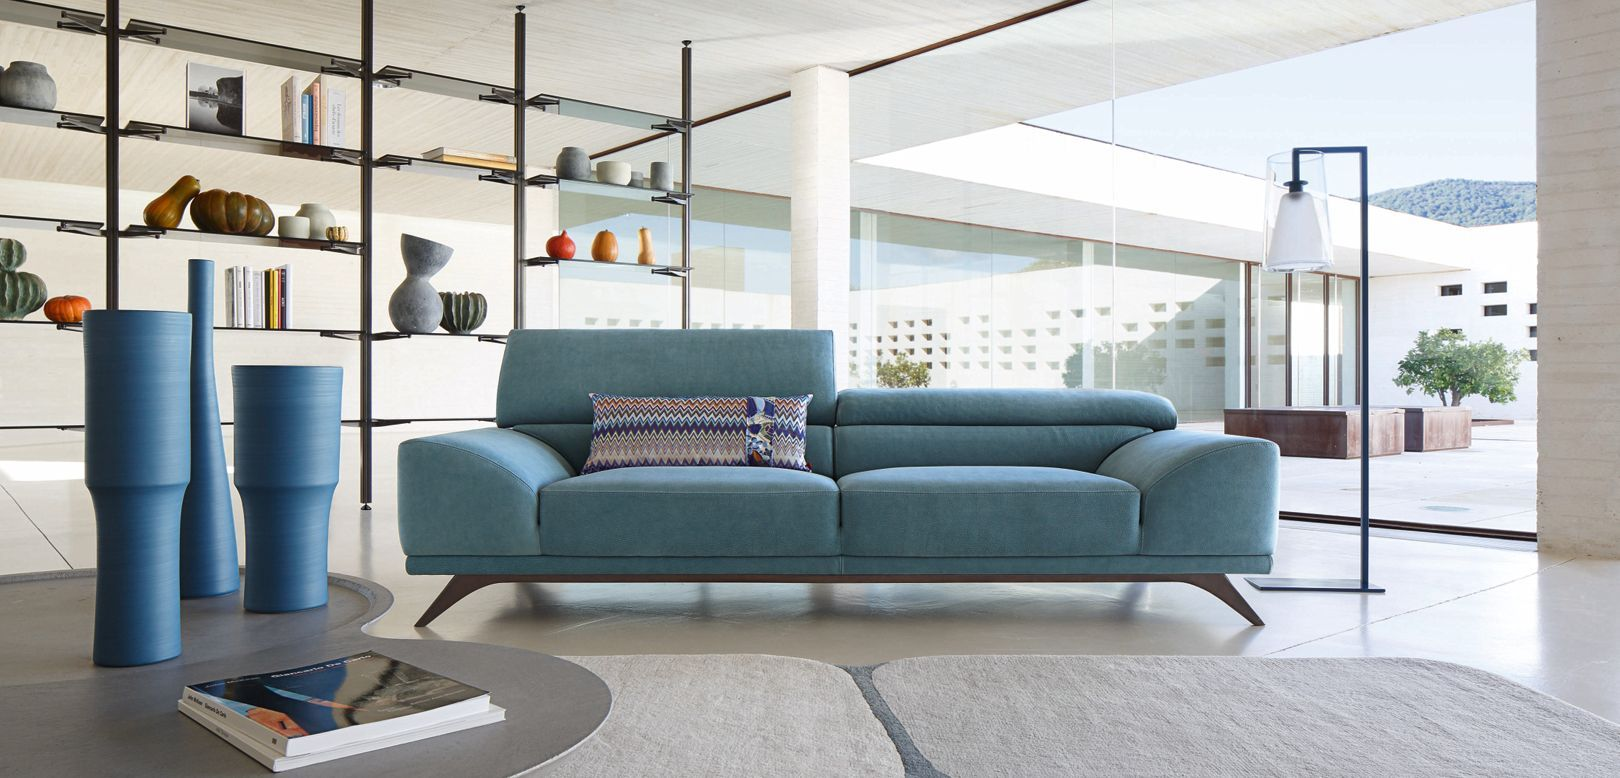 This sofa looks amazing roche bobois huge three seats for Roche et bobois canapes